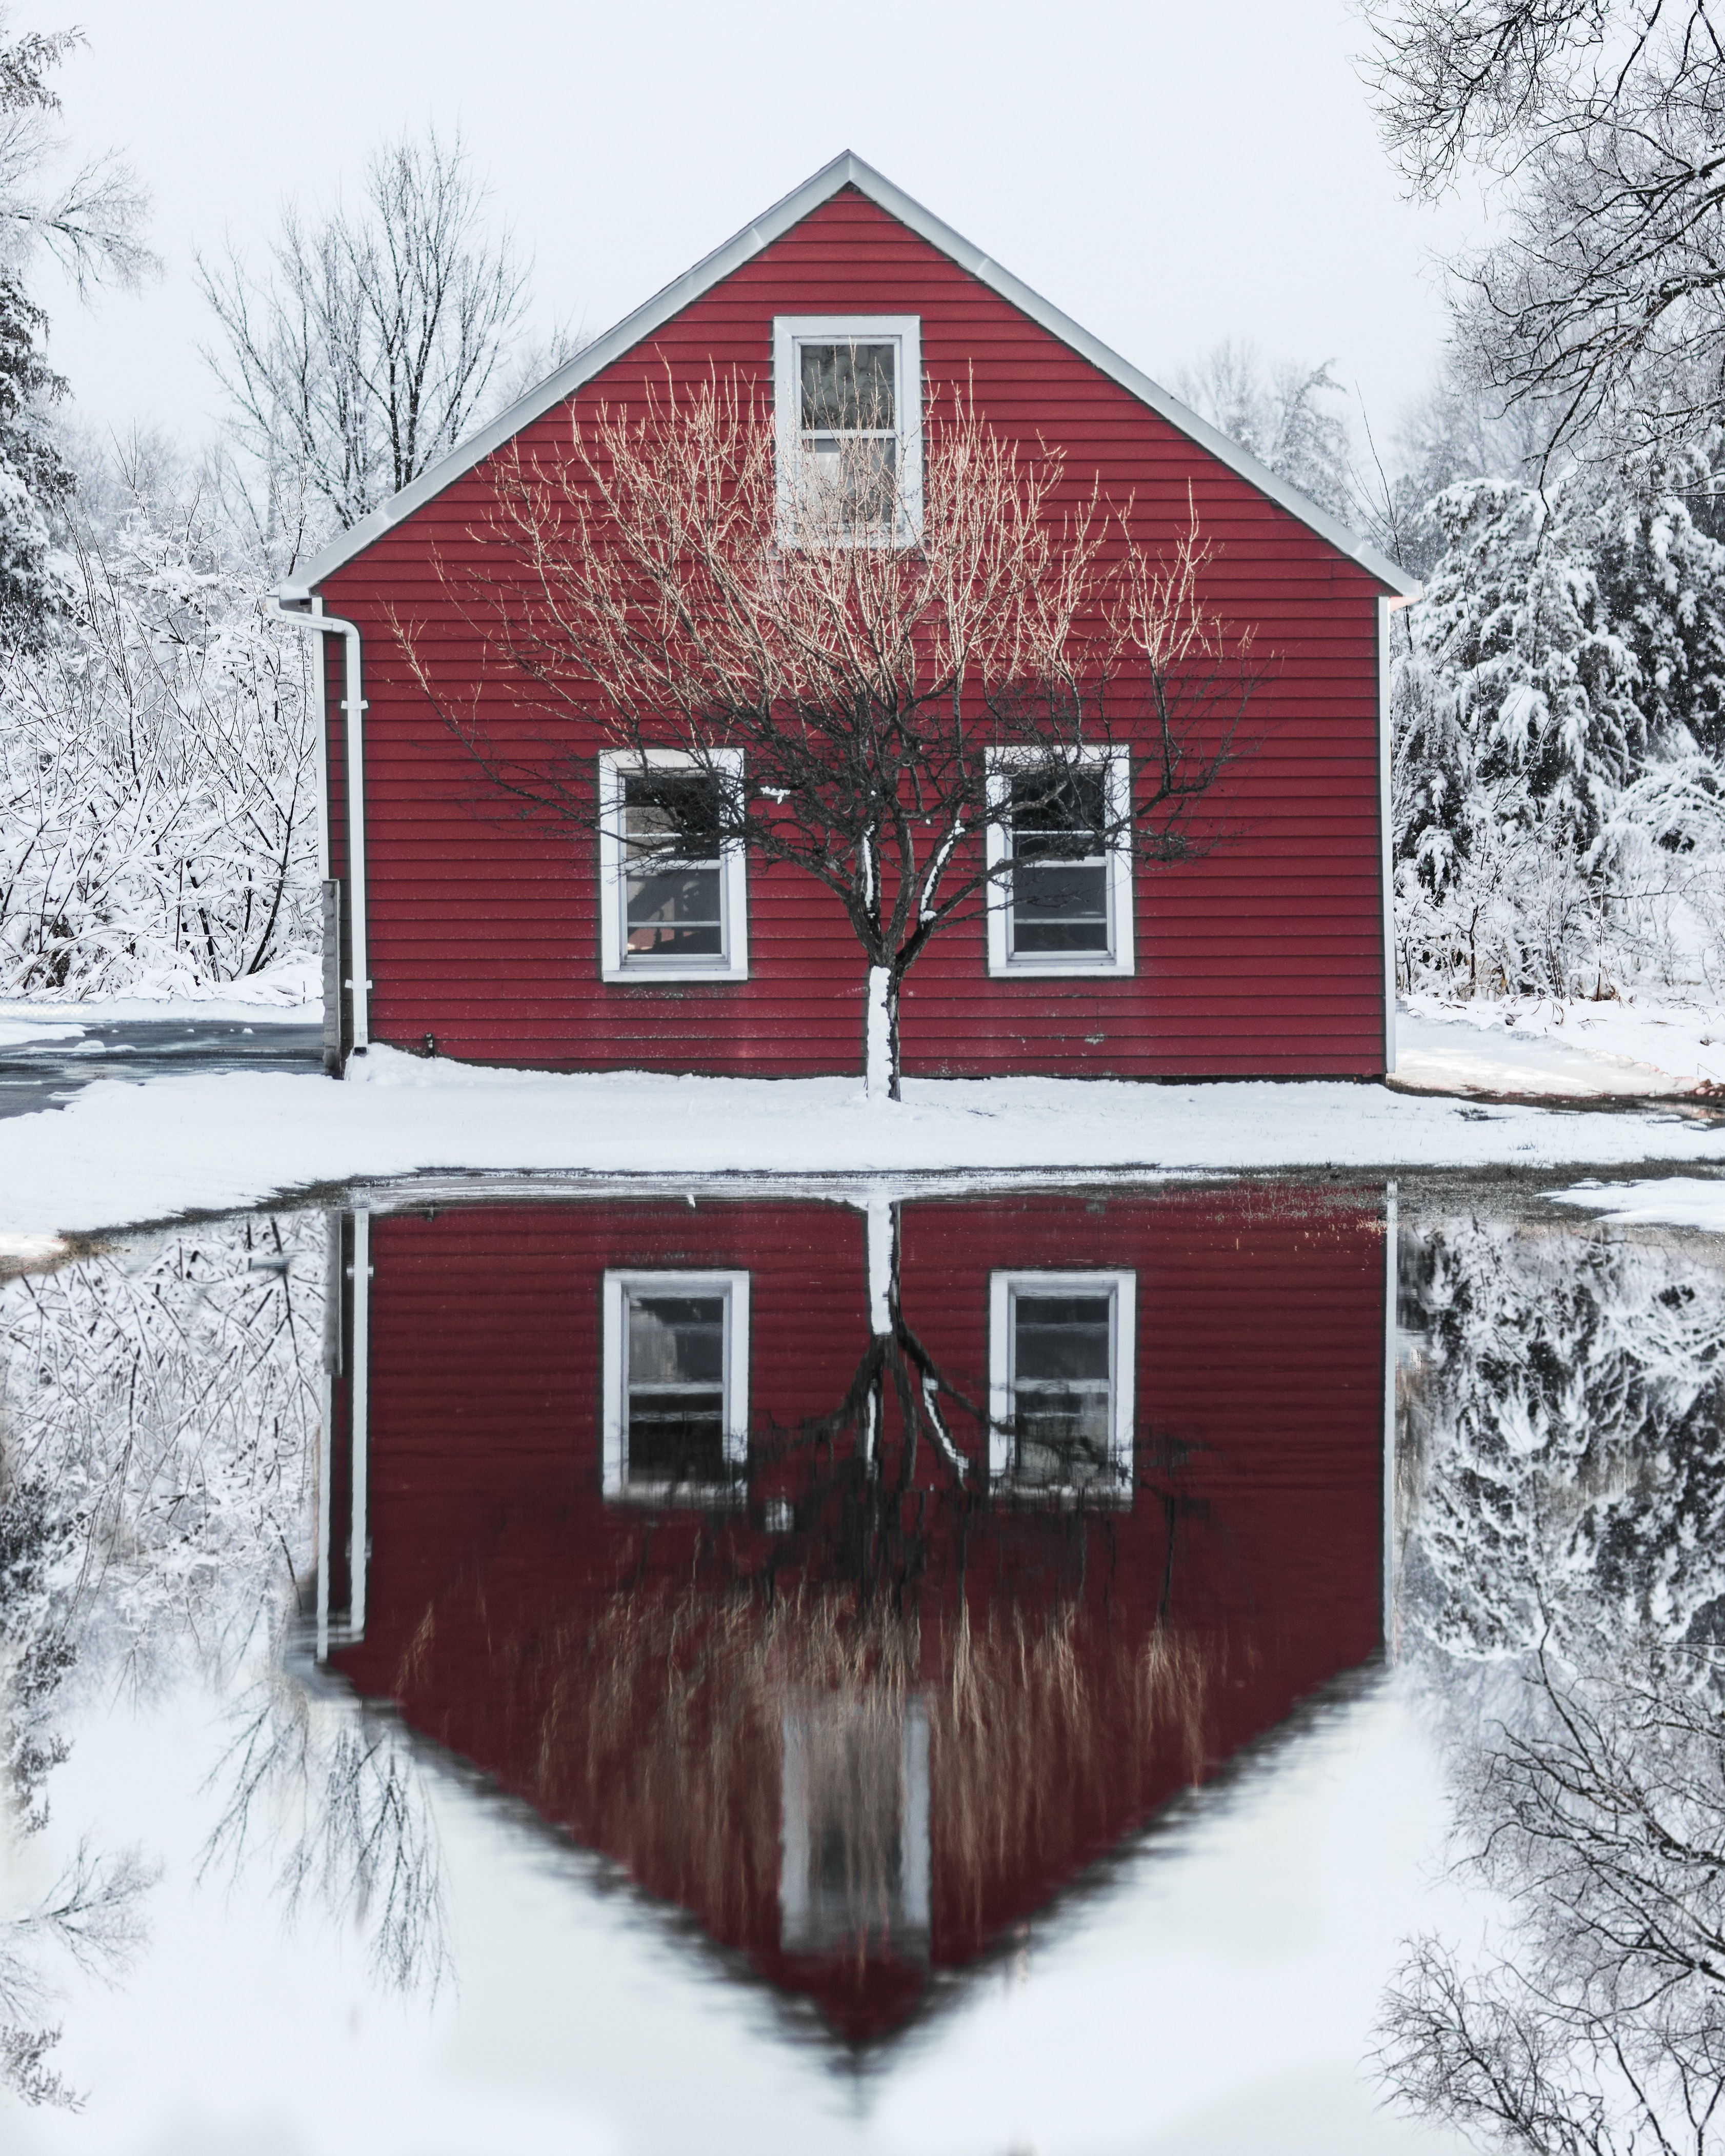 red and white wooden house